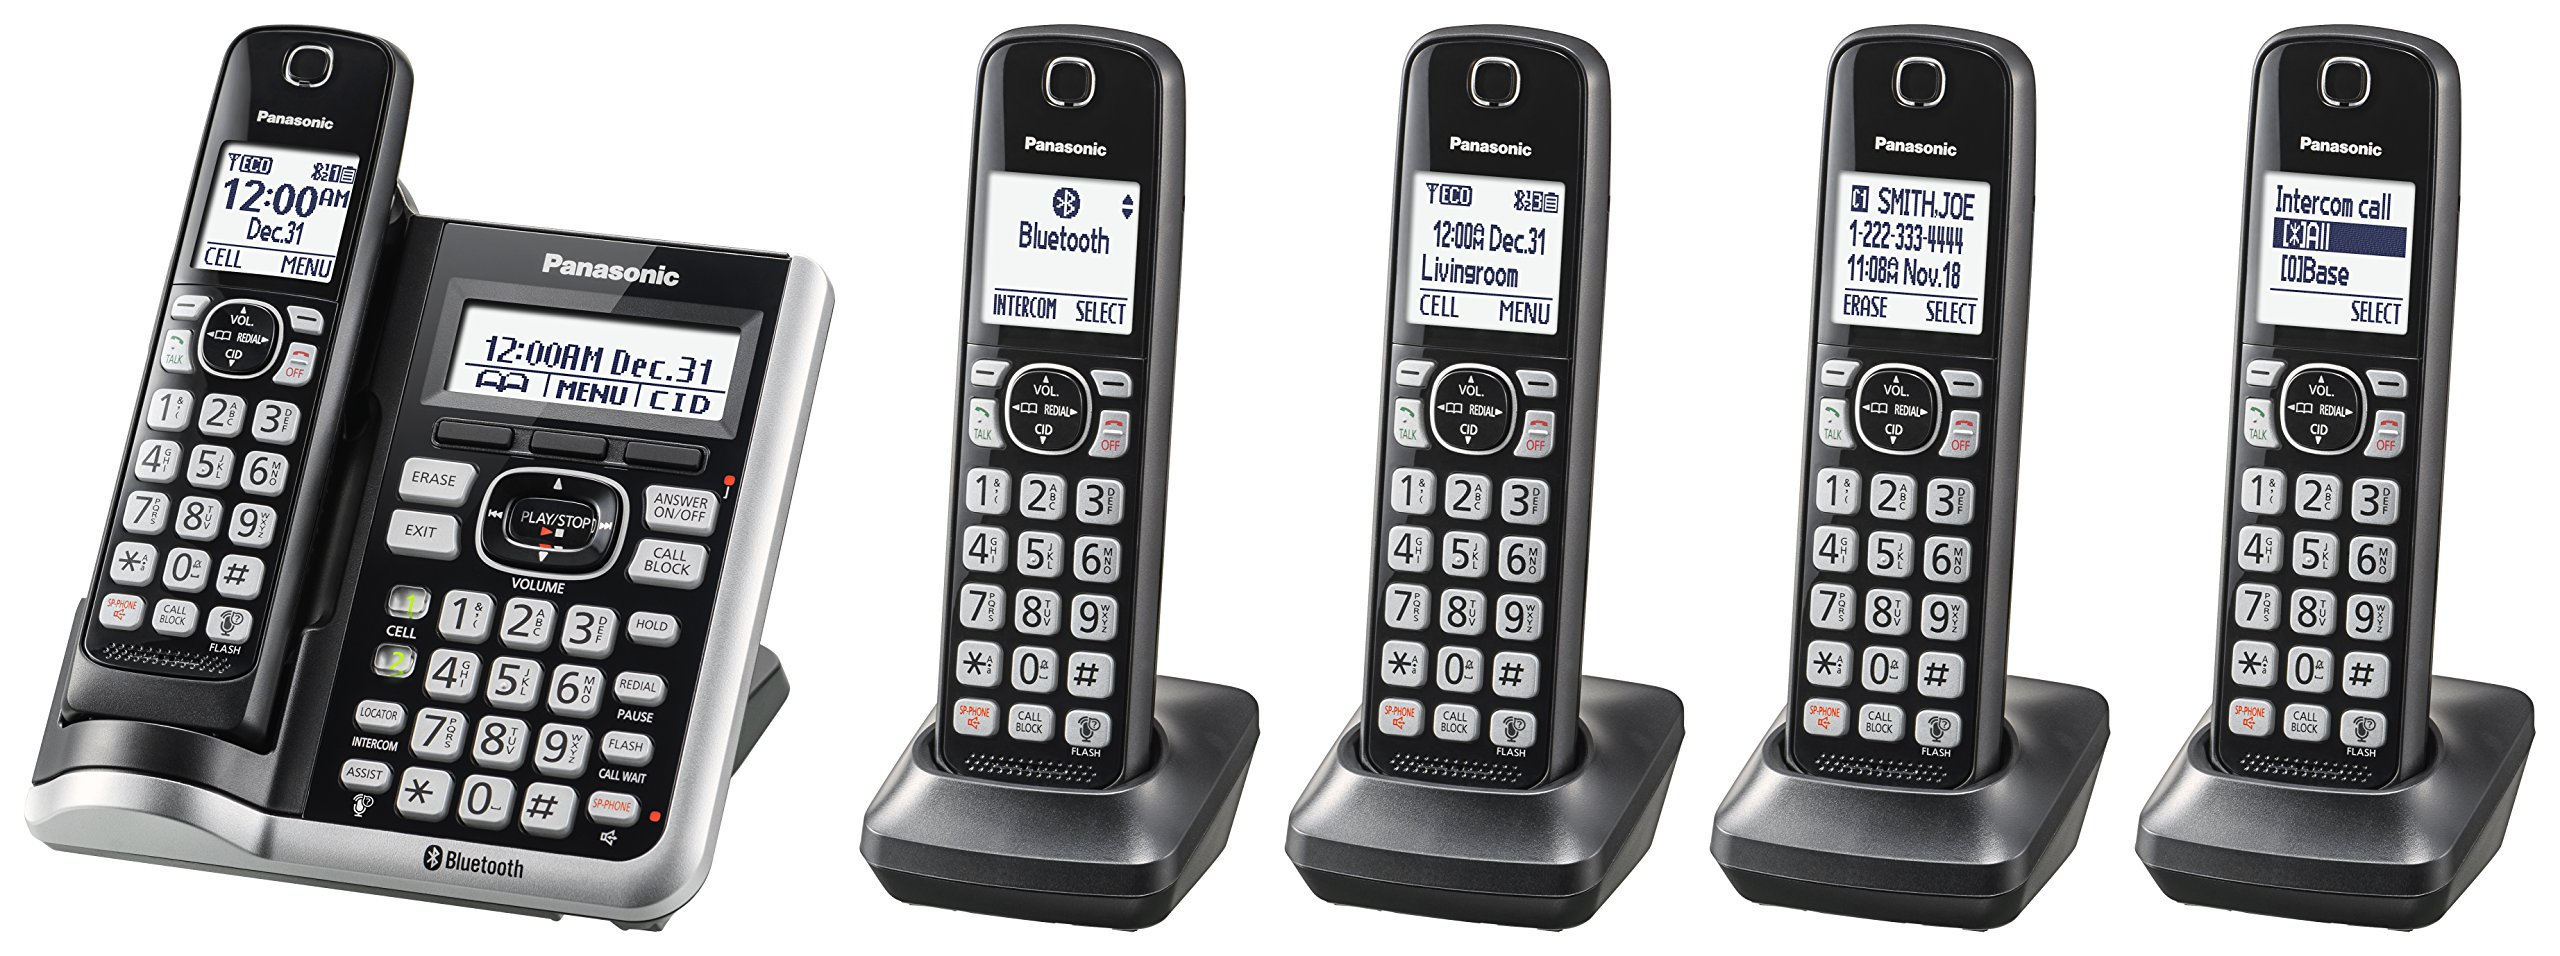 Panasonic KX-TGF575S Link2Cell BluetoothCordless Phone with Voice Assist and Answering Machine - 5 Handsets by Panasonic